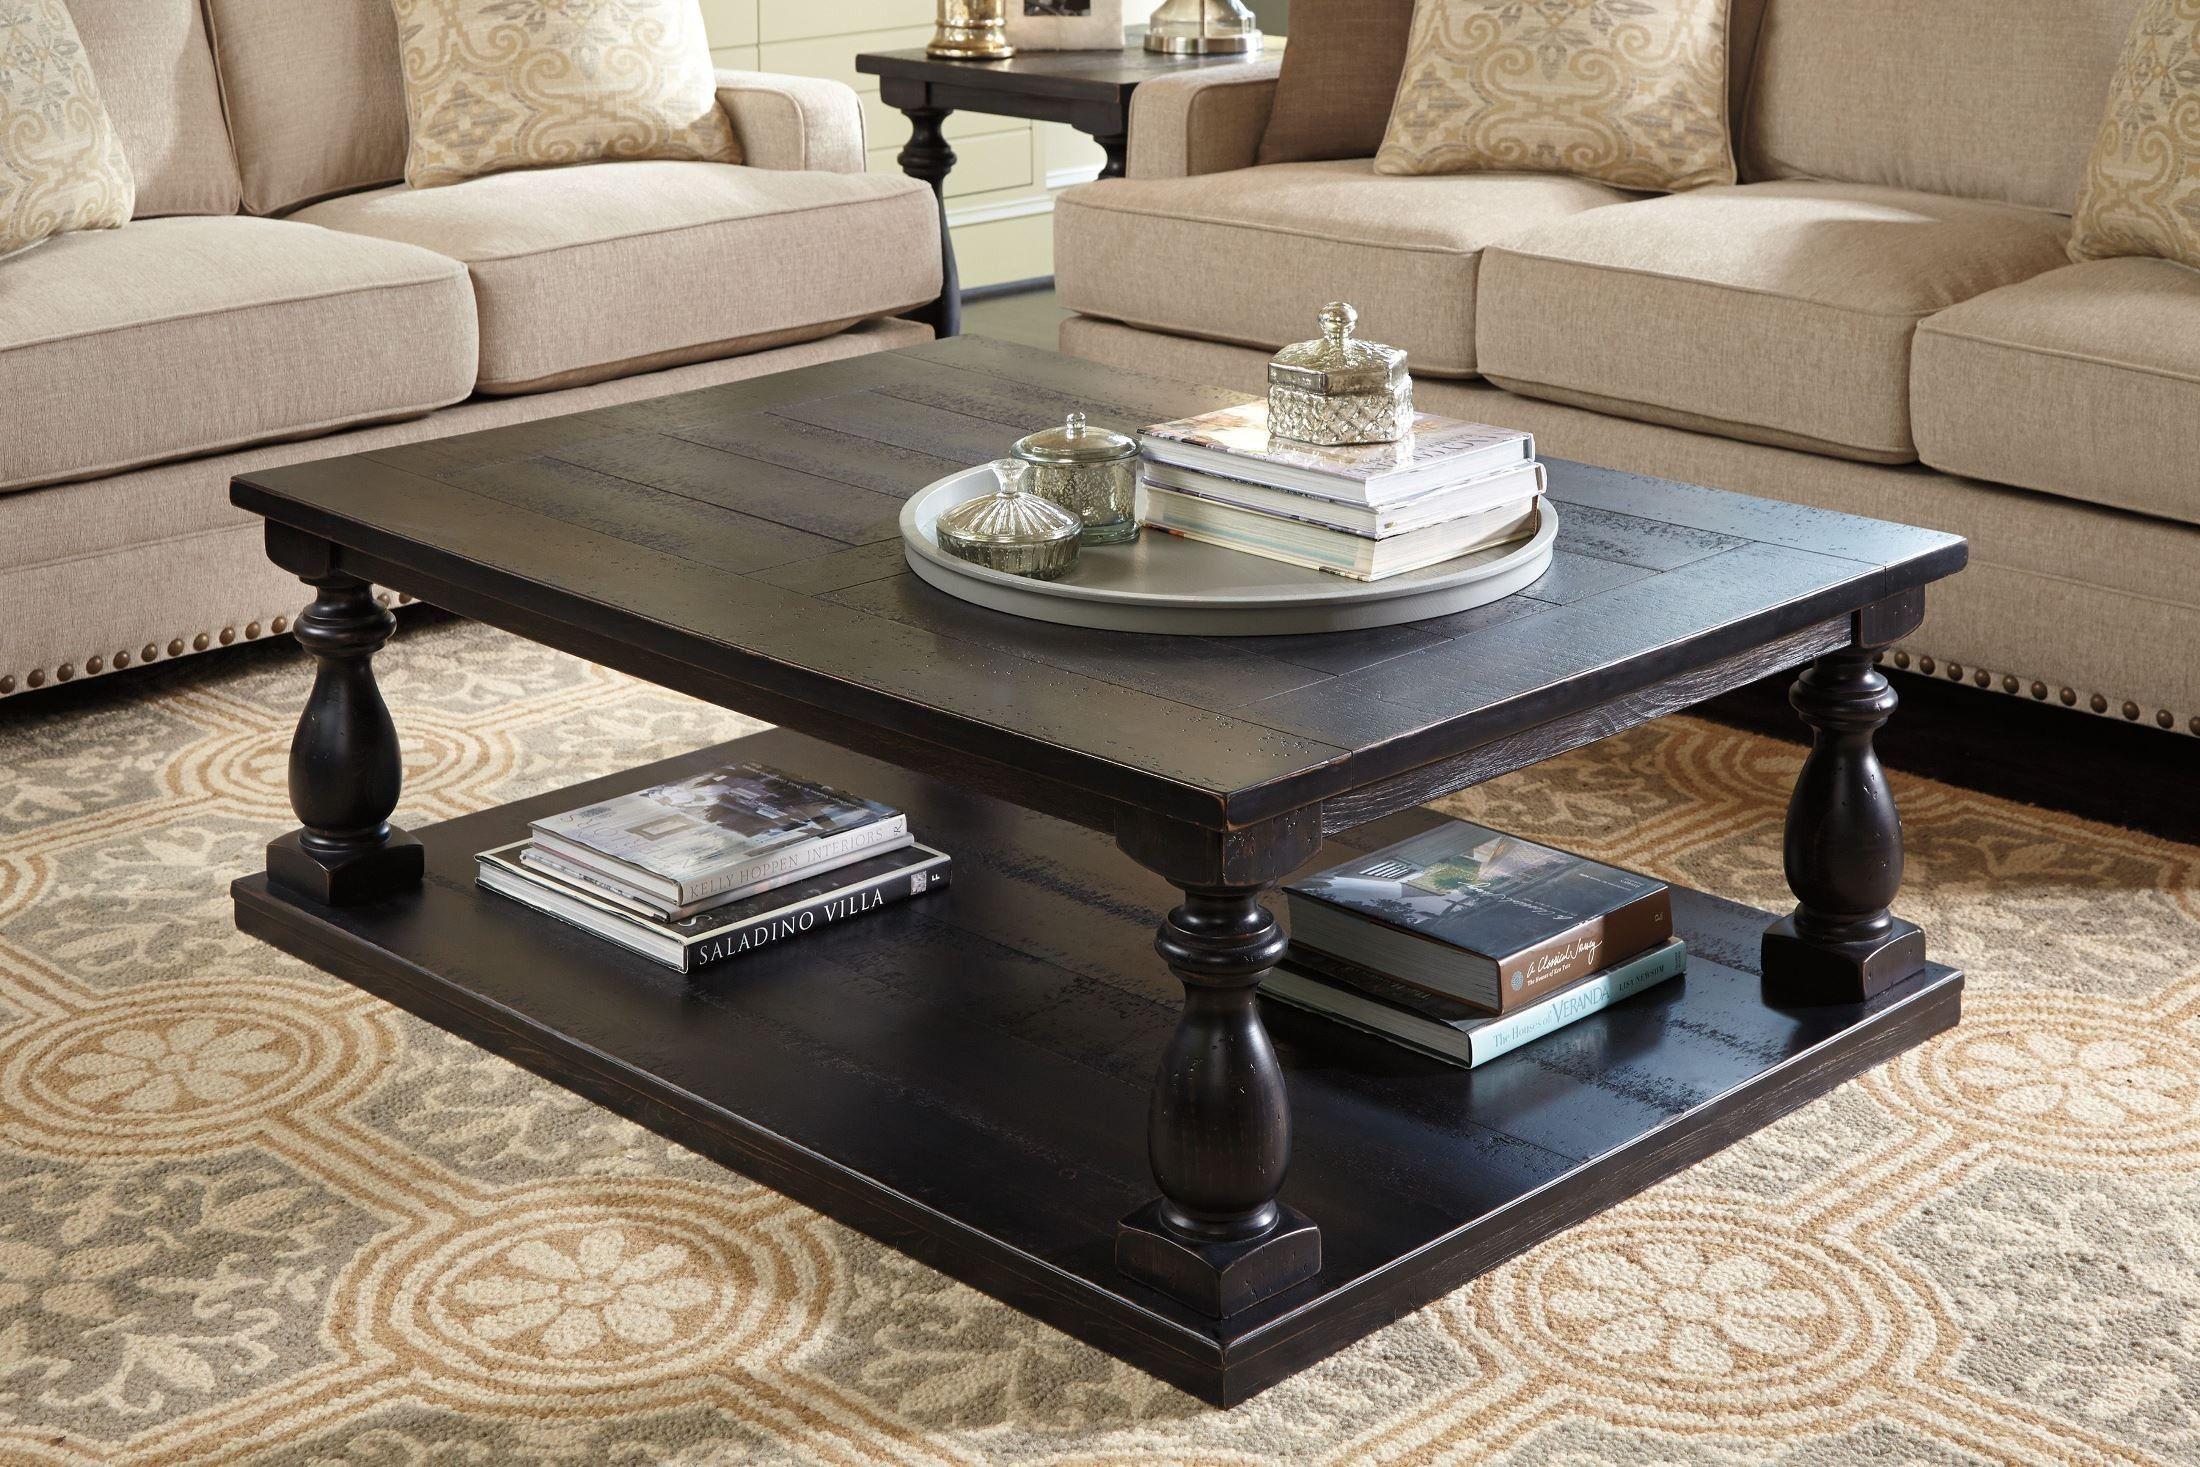 I Want This Set From Coleman Mallacar Rectangular Cocktail Table - Ashley furniture pineville nc